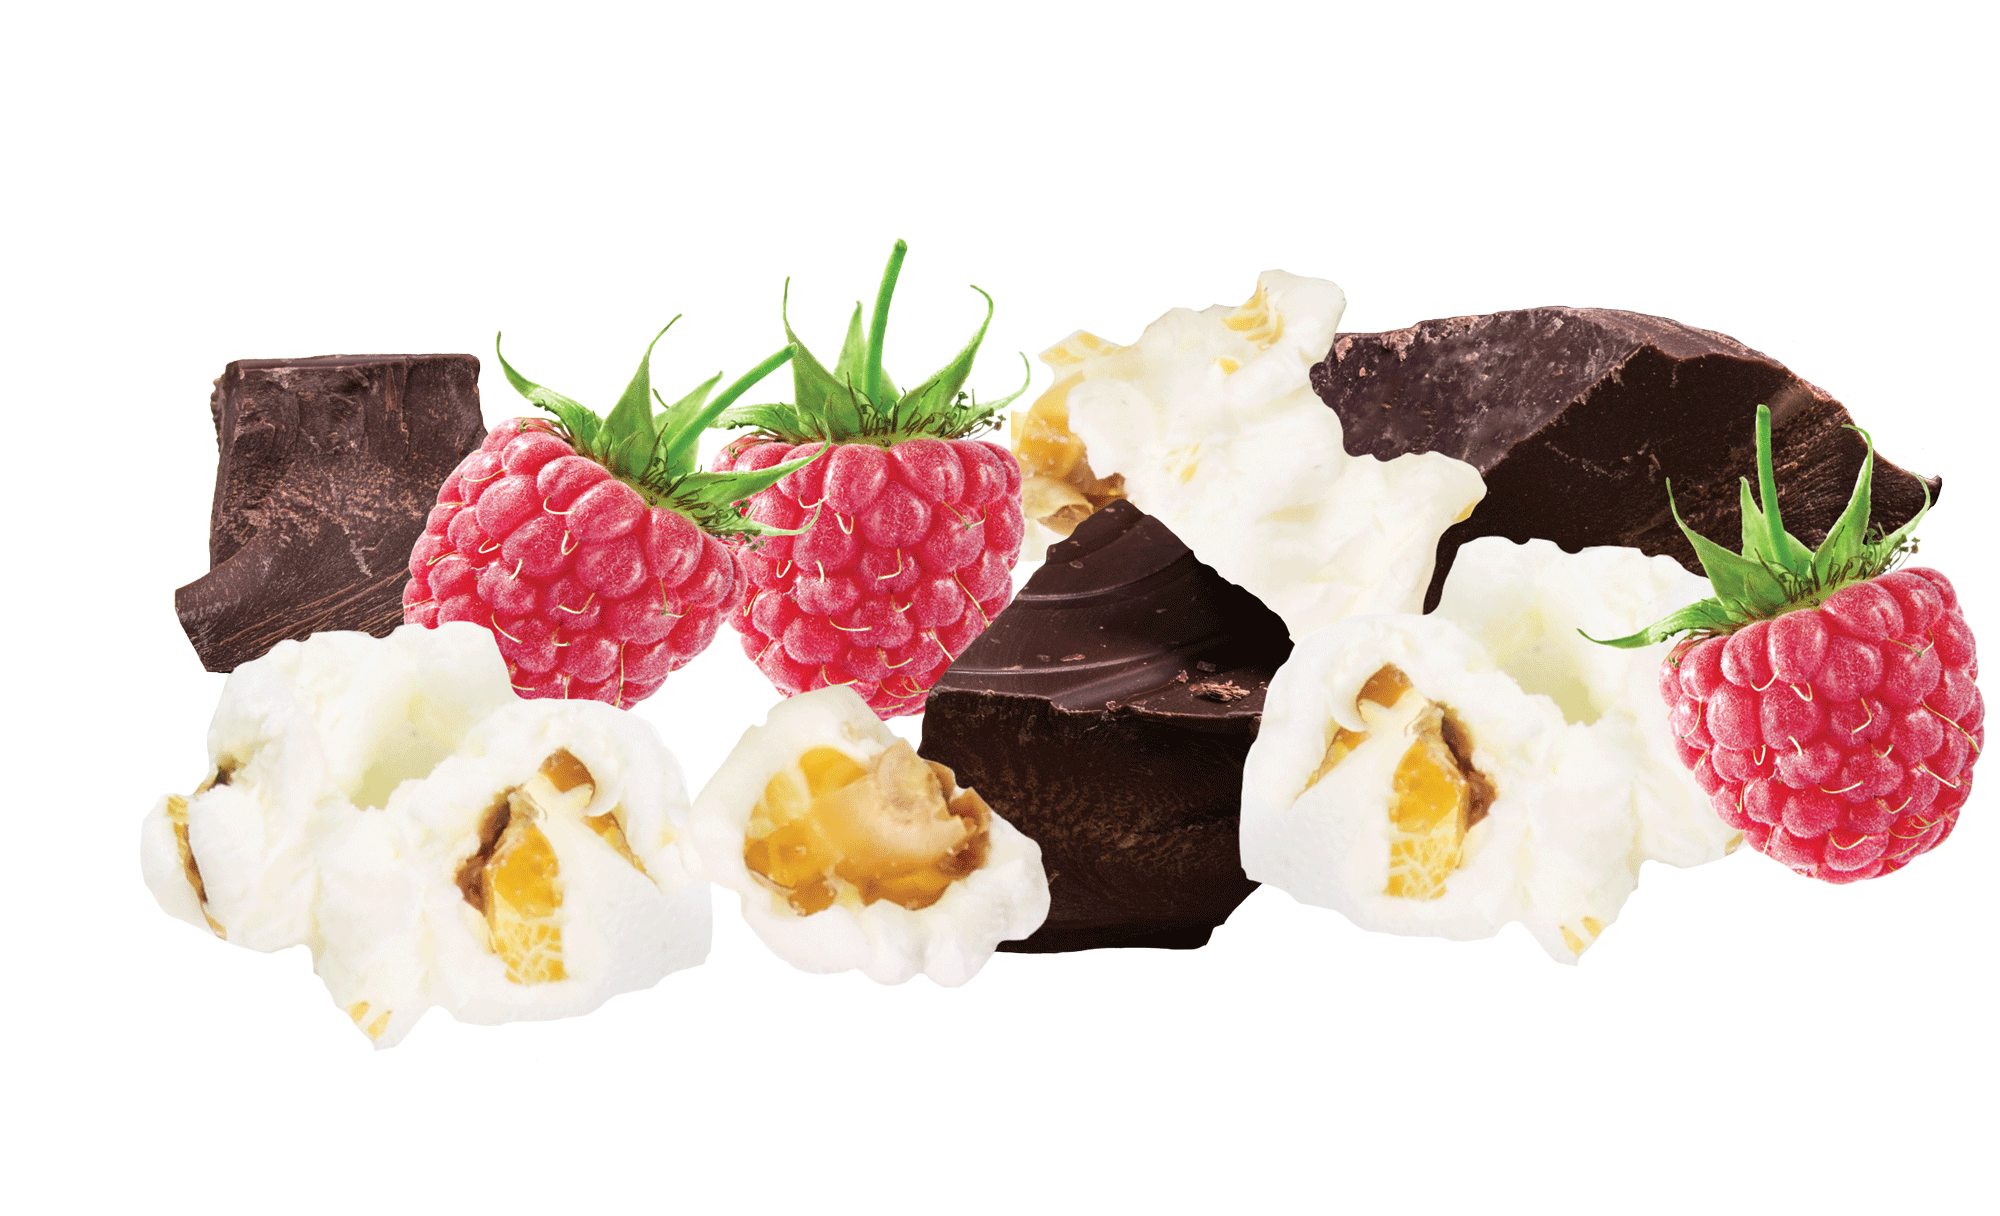 raspberry & dark chocolate popcorn bar